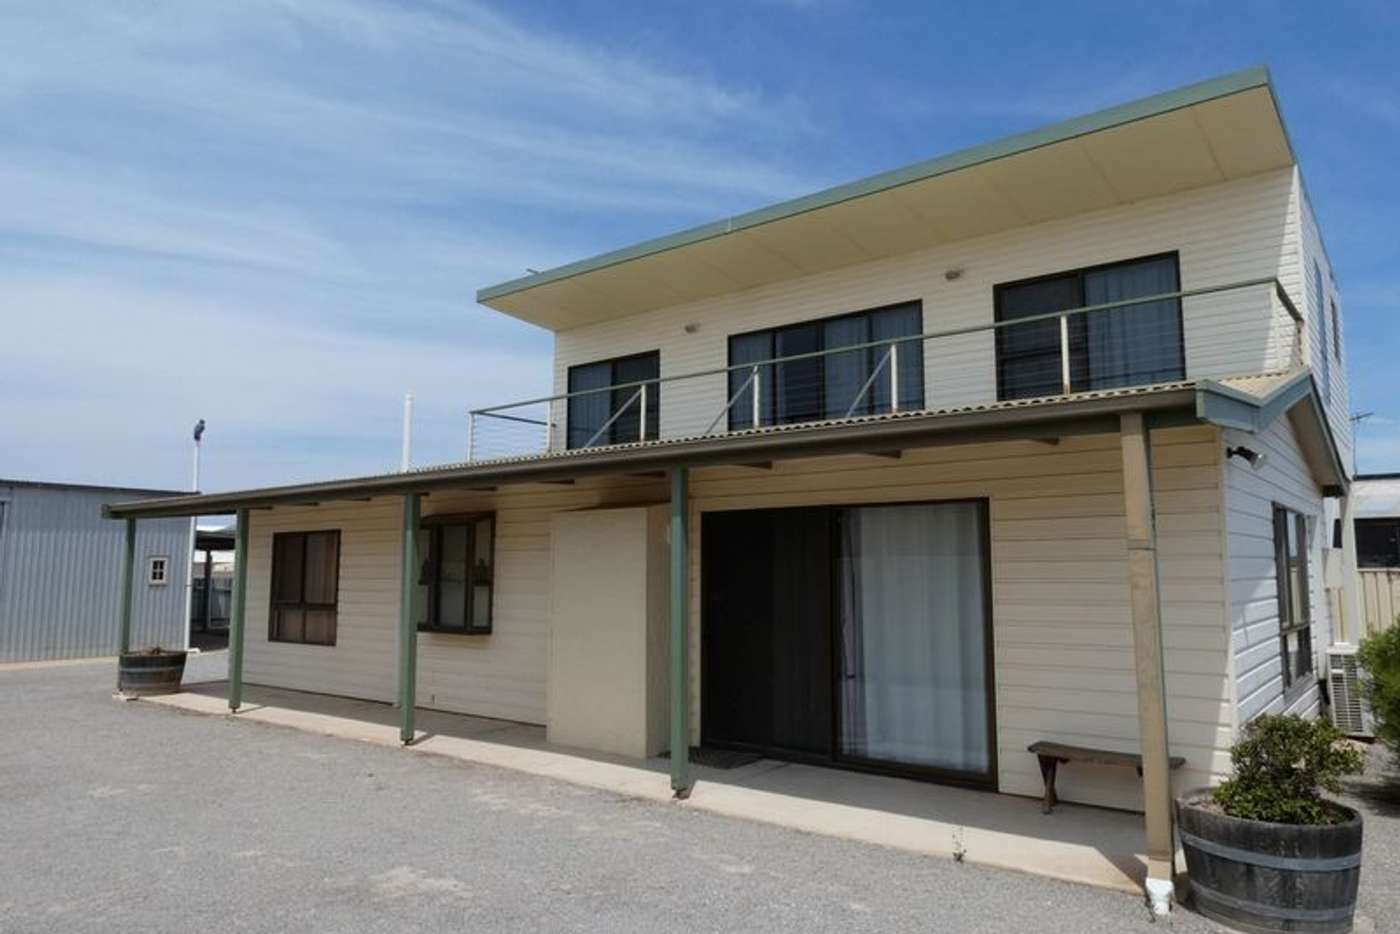 Main view of Homely house listing, 9 Whiting Drive, Edithburgh SA 5583